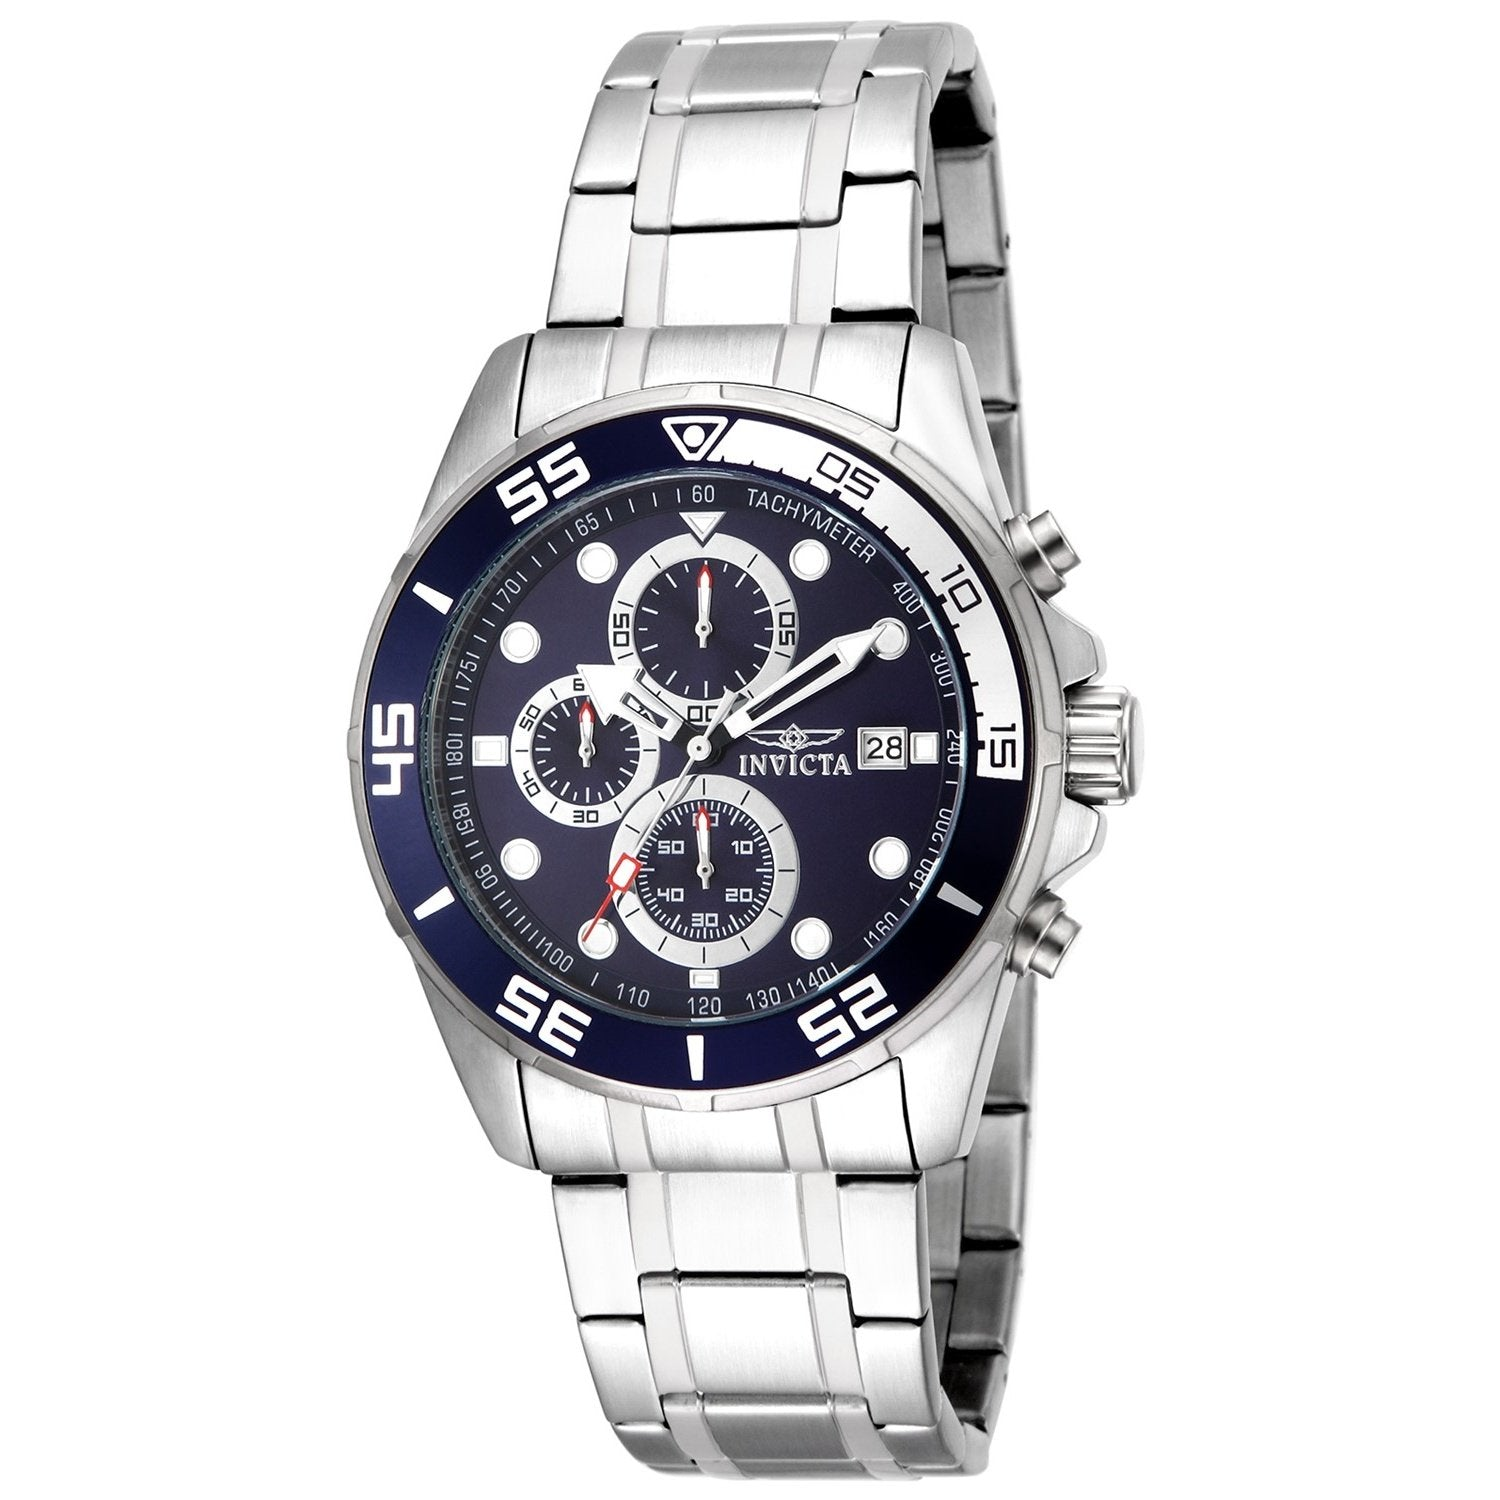 Invicta Men's 17013 Specialty Stainless Steel Watch